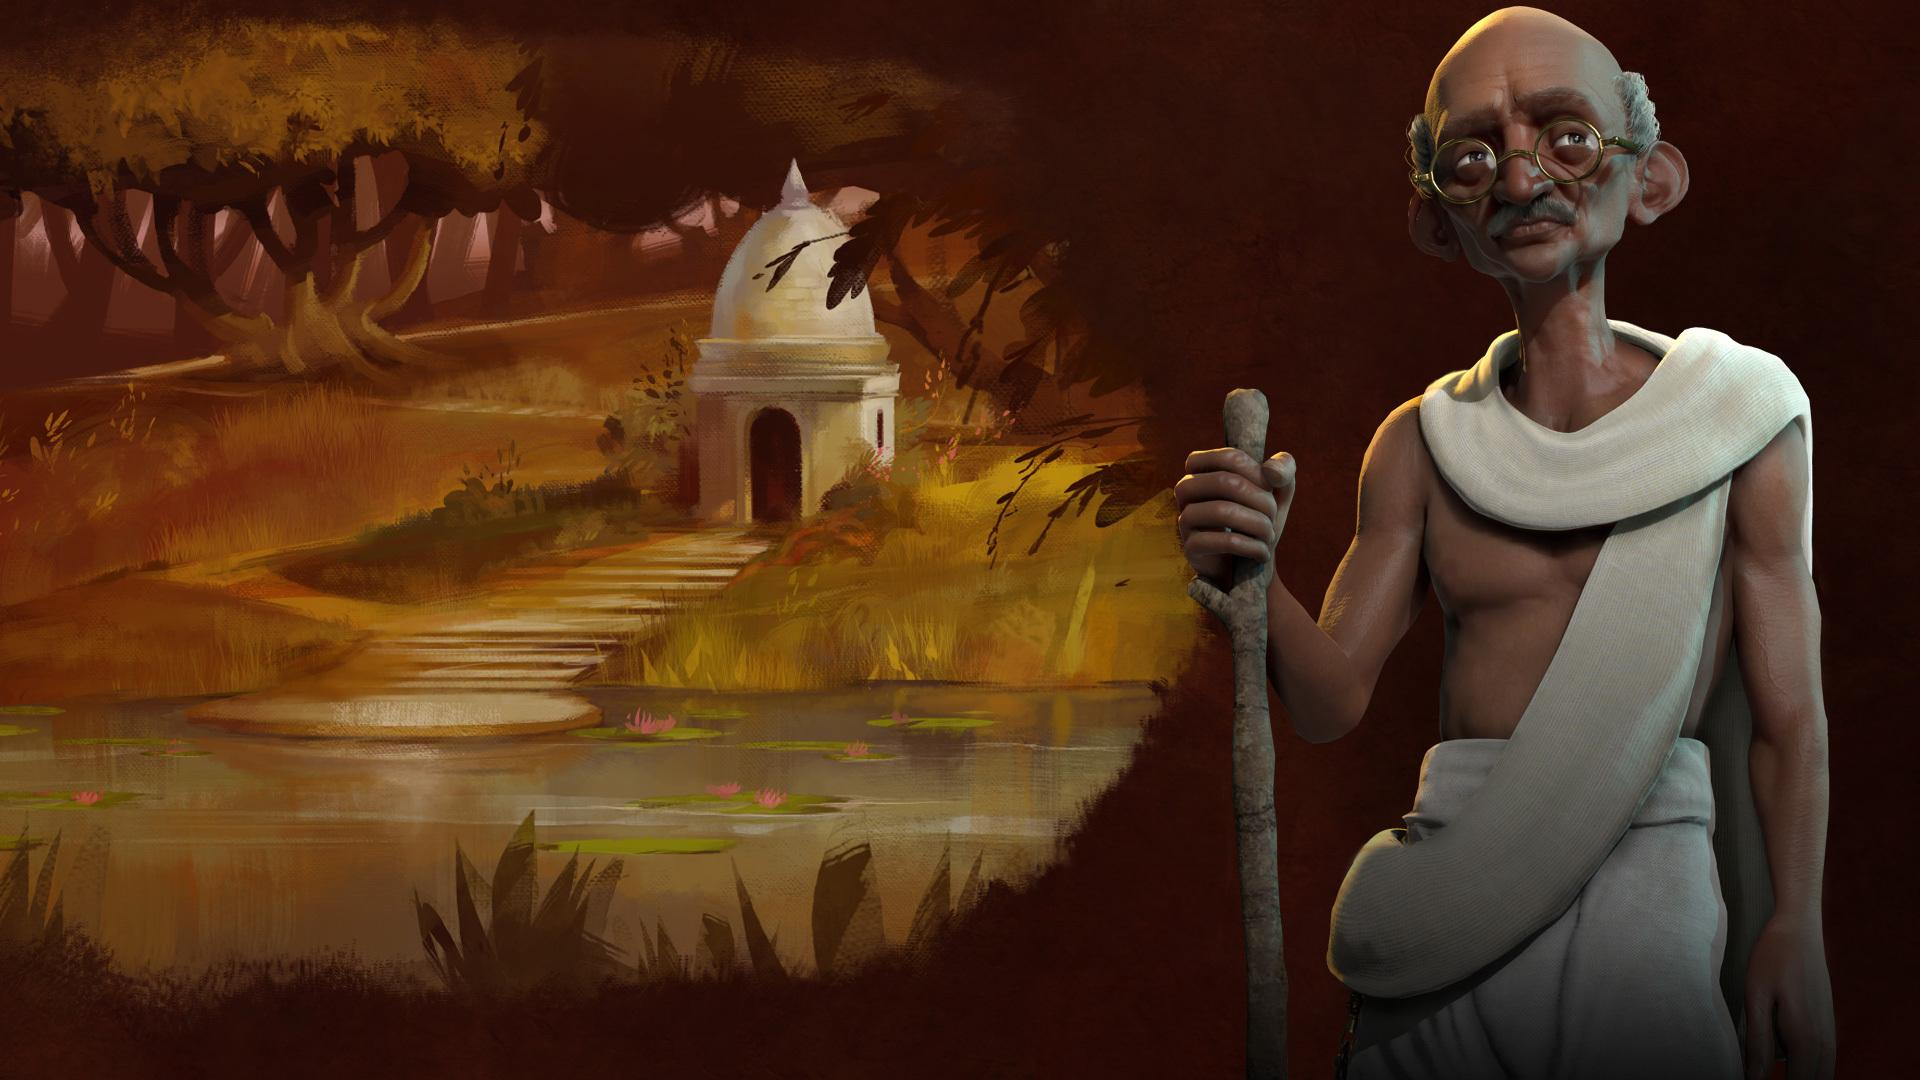 Civilization 6': It's Not 'Civ' Without Gandhi Leading India To